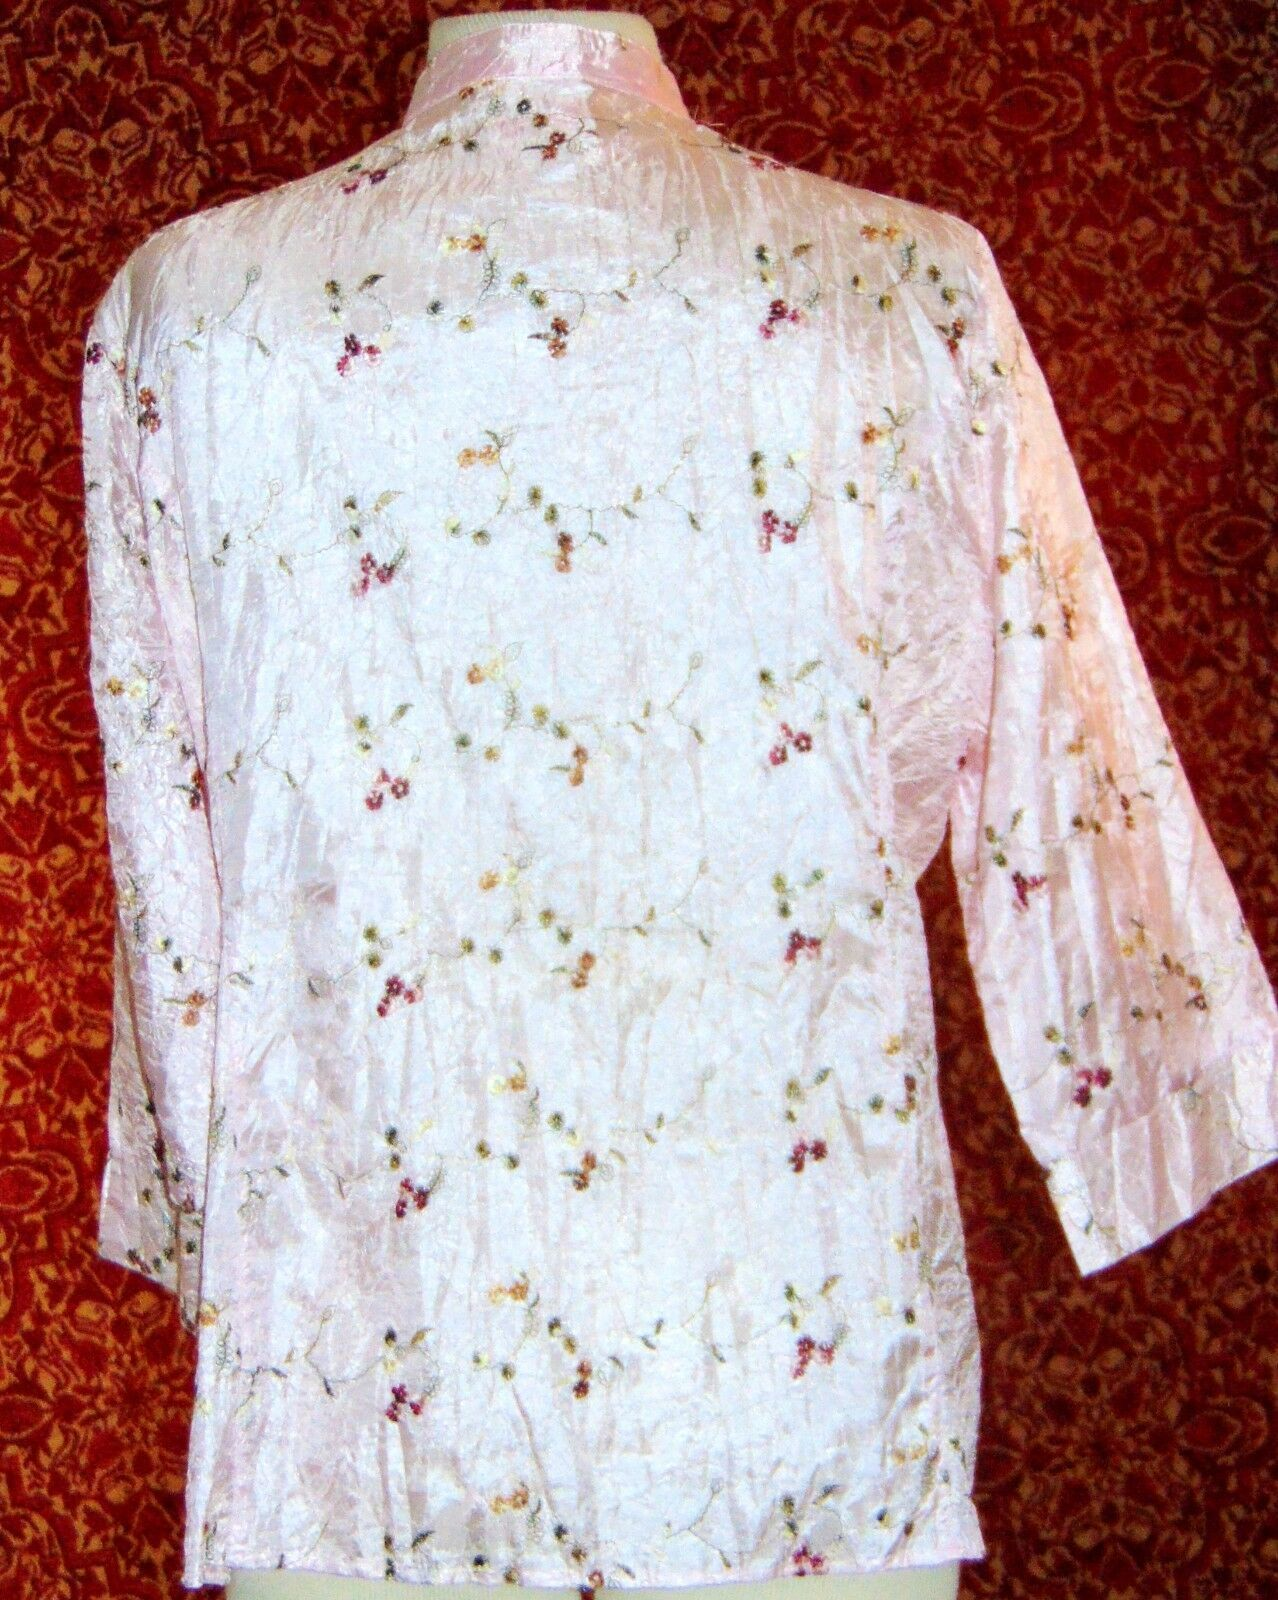 CLAUDIA RICHARD pink floral polyester 3/4 sleeve button blouse M (T43-04E9G) image 6